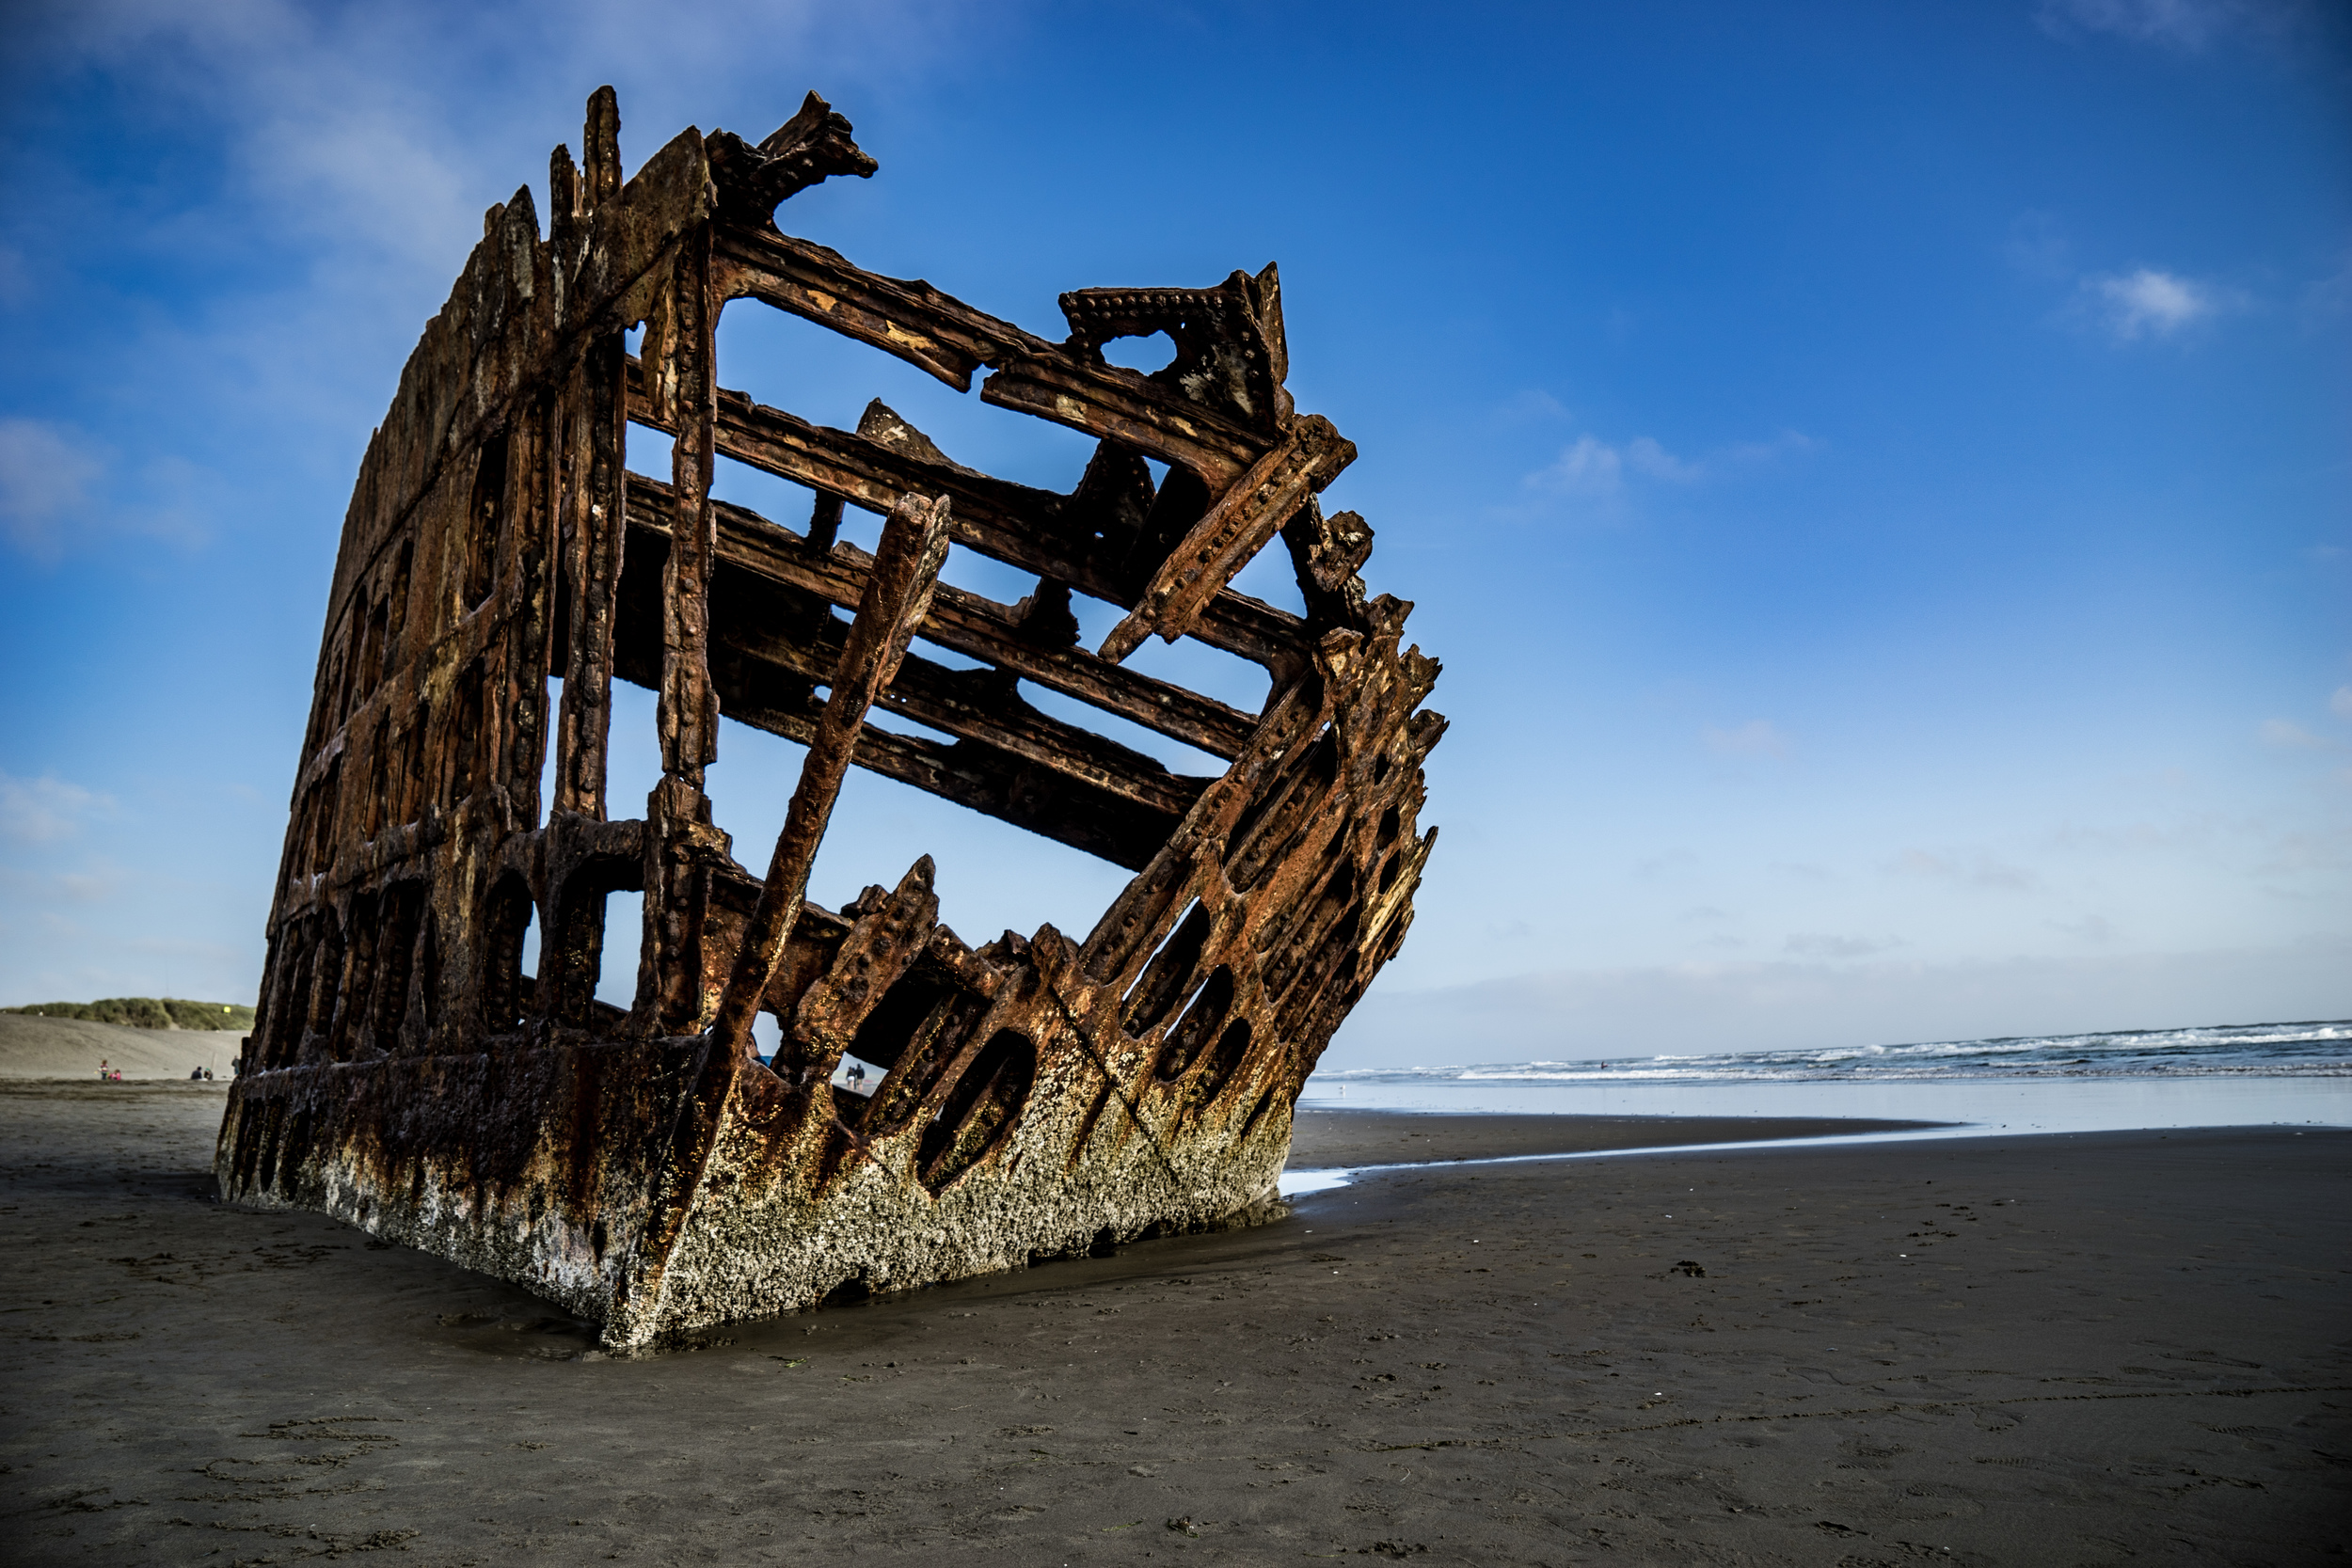 The remain of  Peter Iredale 's rusty bow and masts.  The ship was washed ashore in 1908 as it was bound for Portland from Mexico.  Thankfully, there were no casualties (Wikipedia).